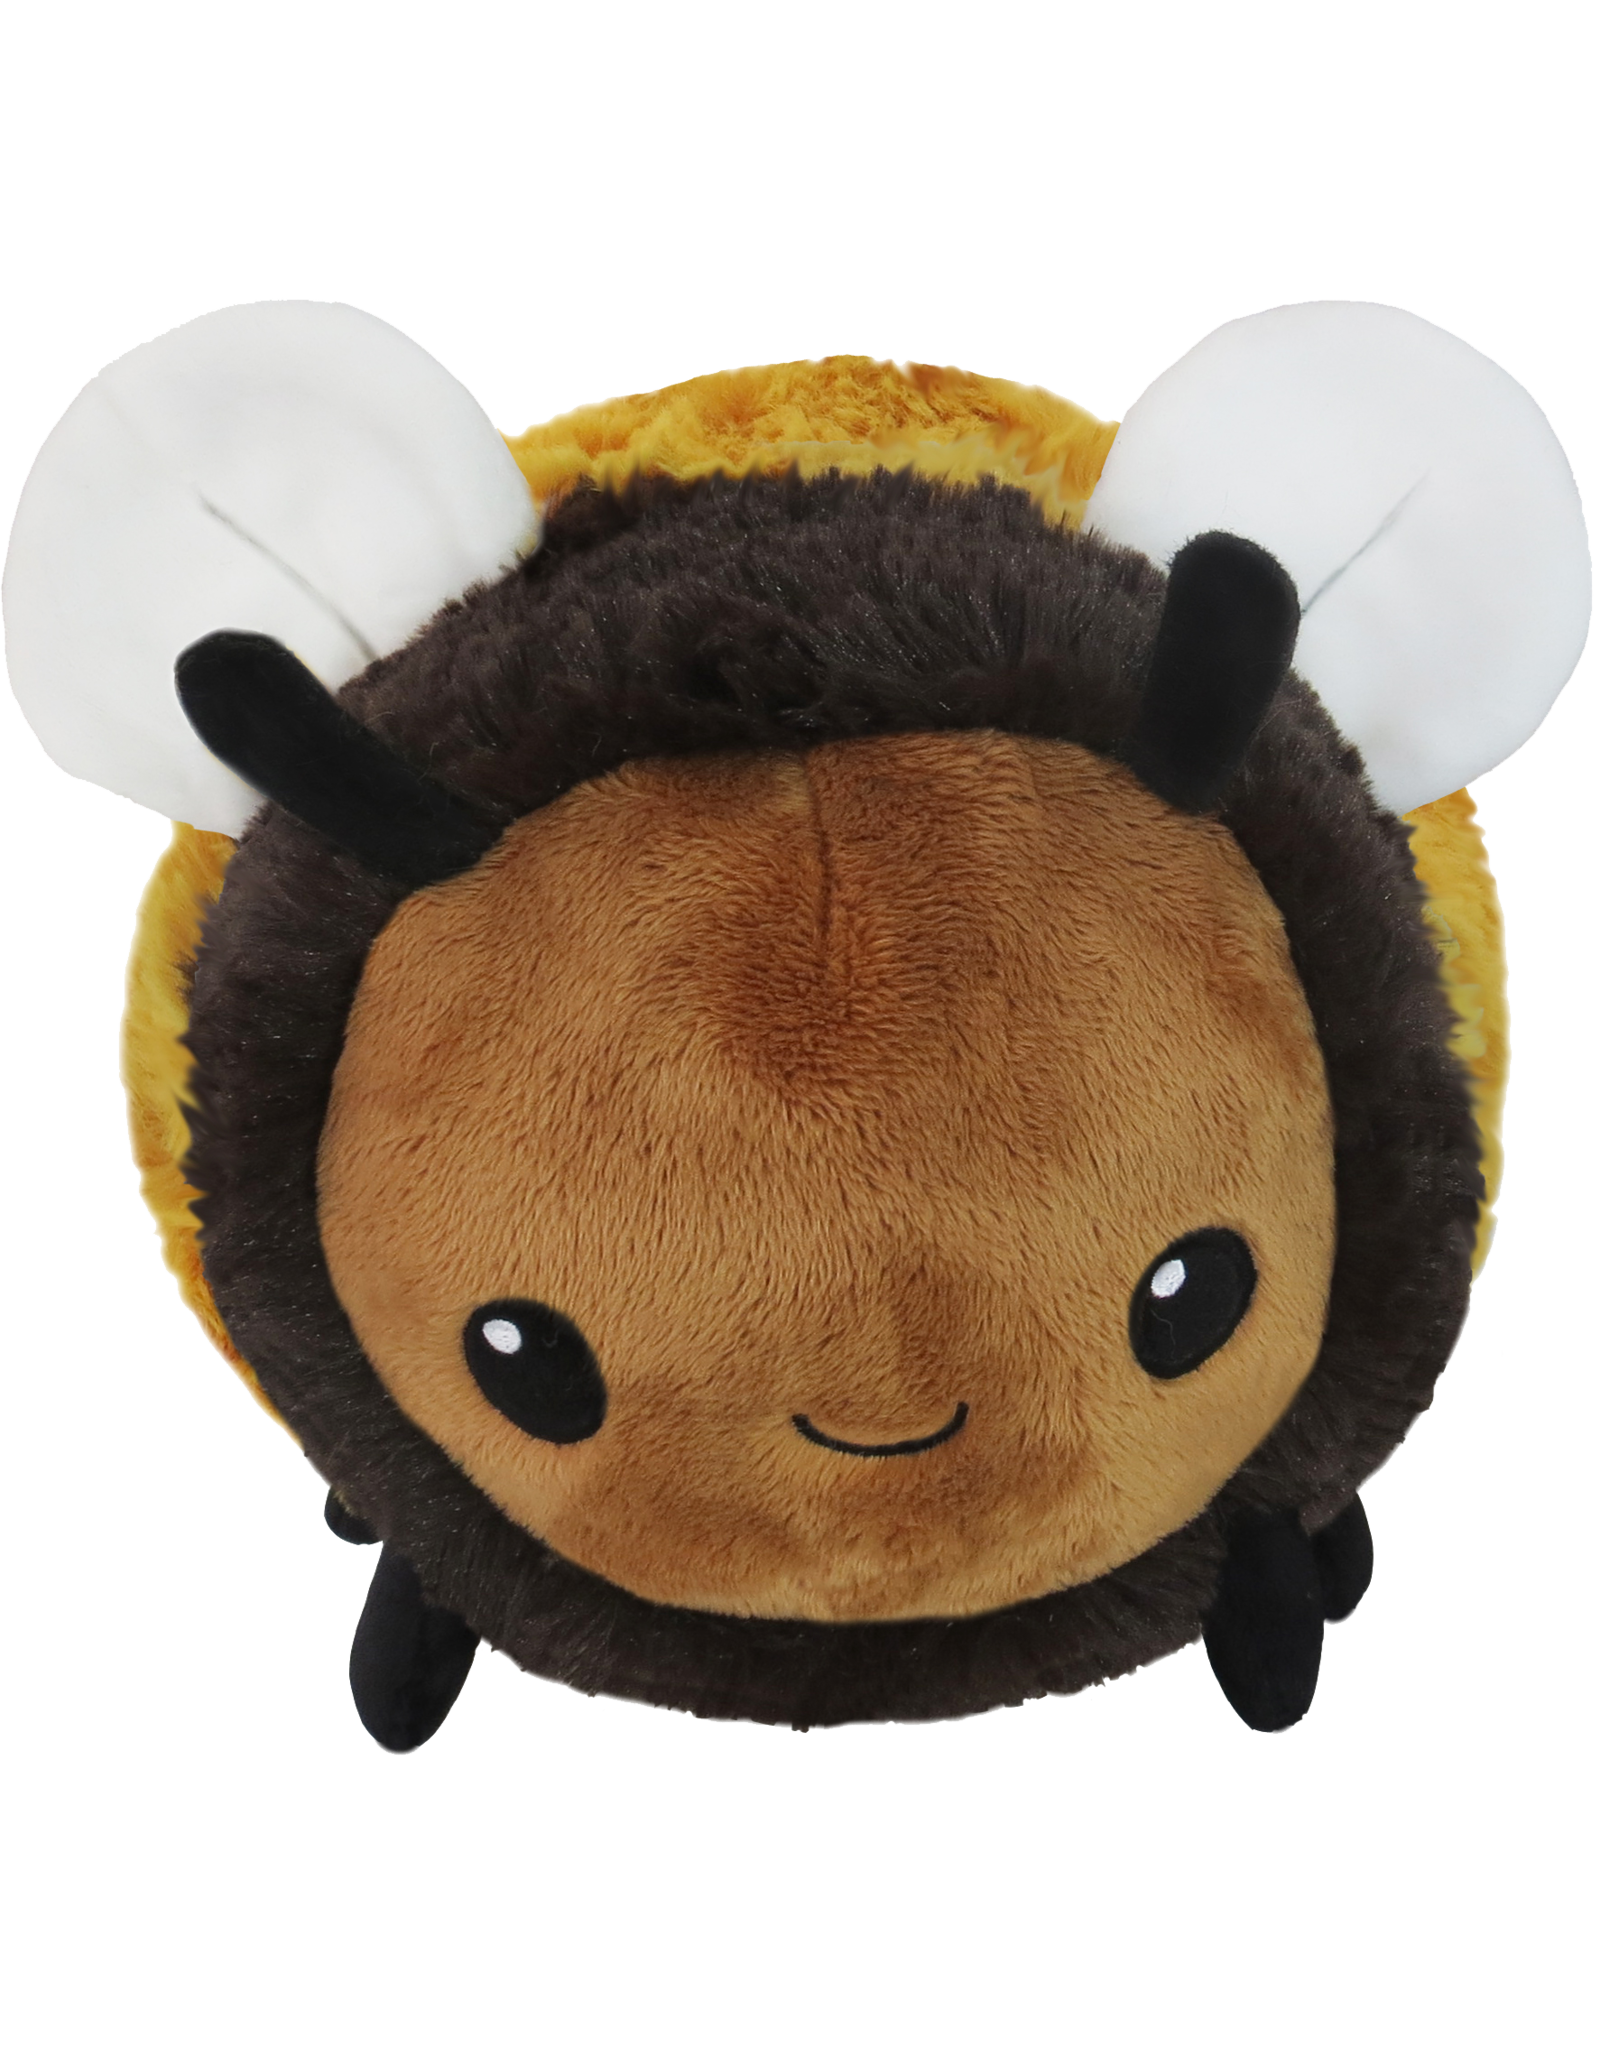 Squishable Fuzzy Bumblebee Small